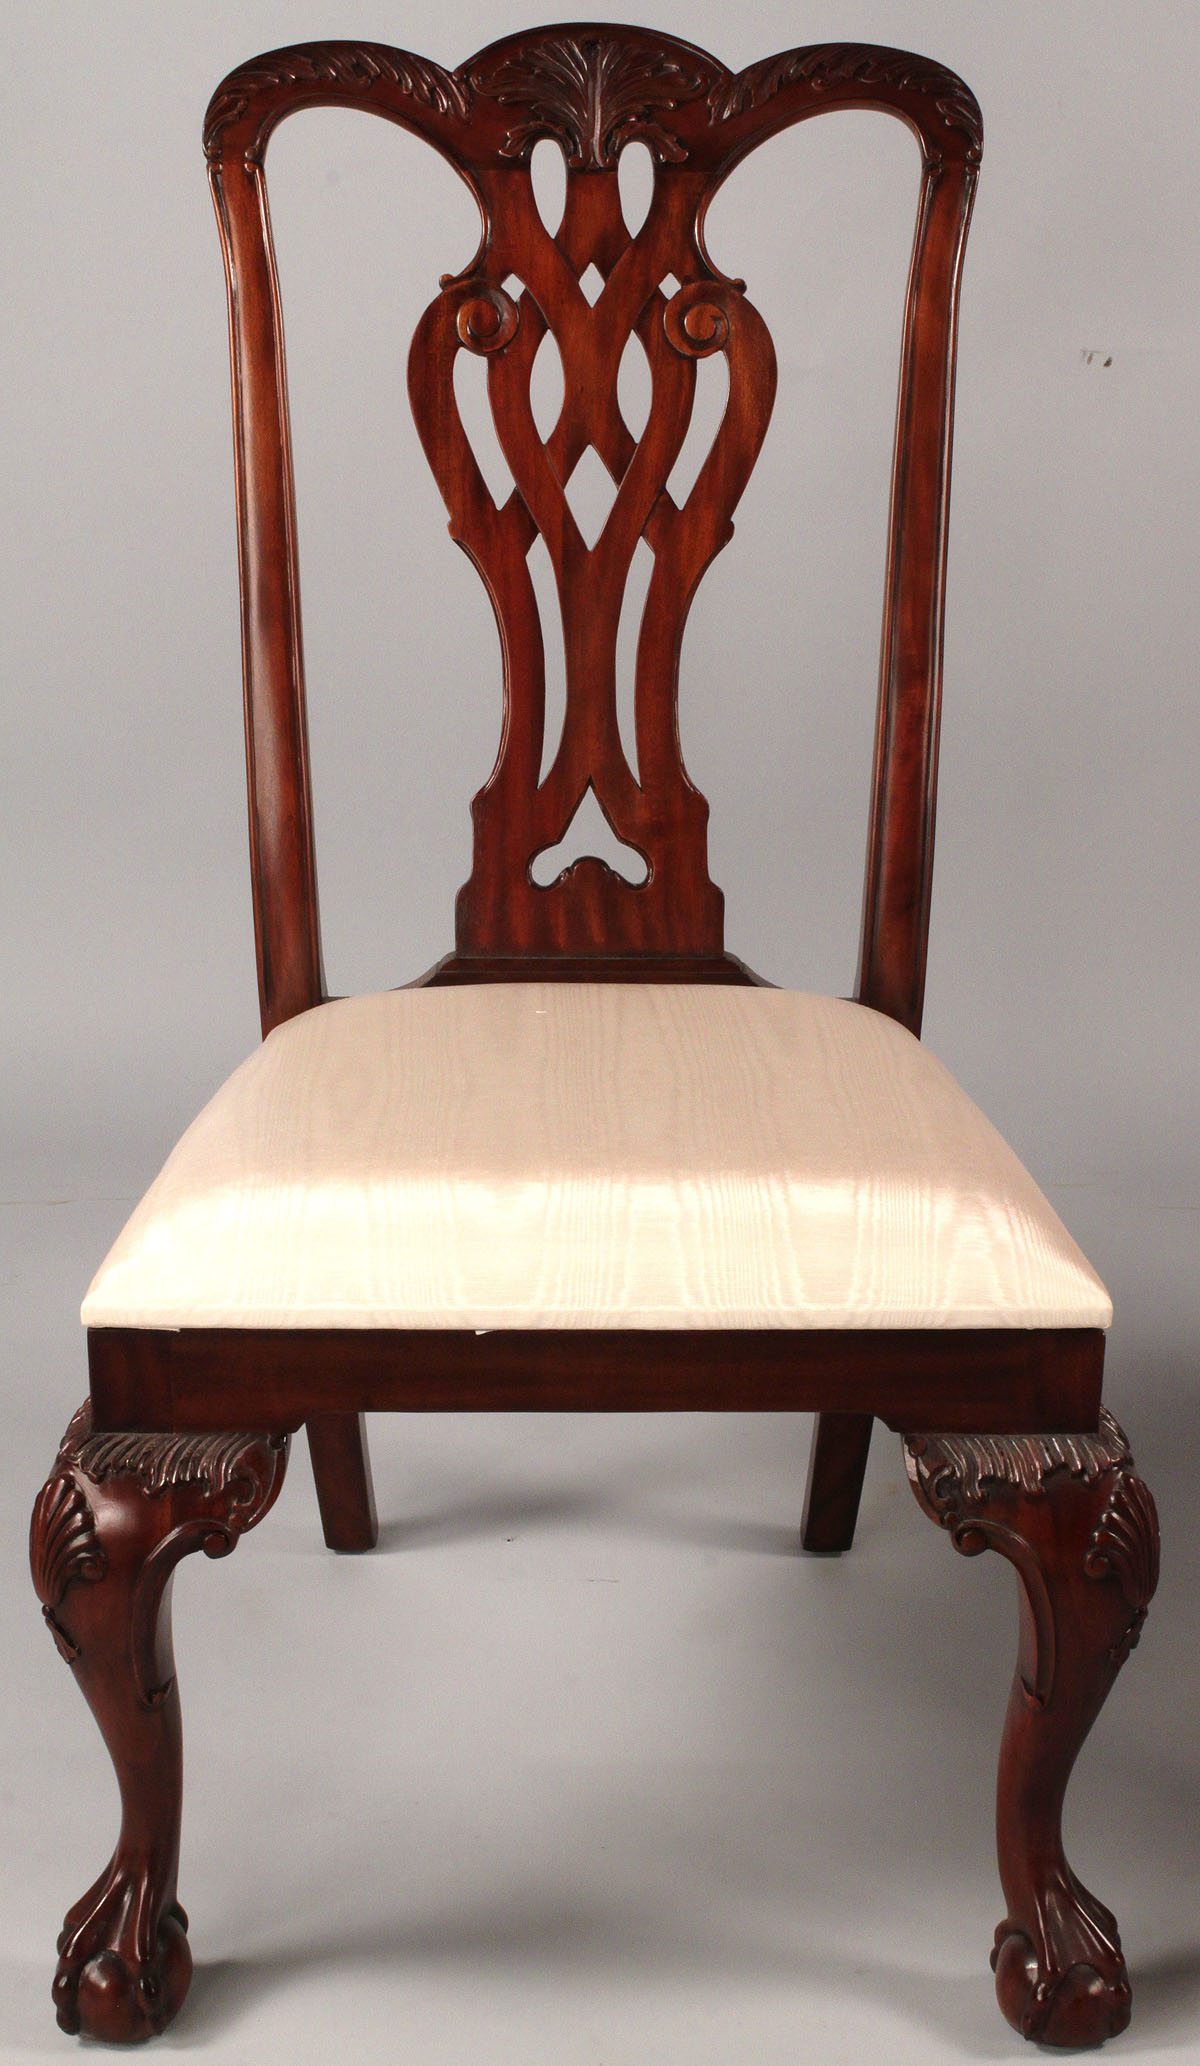 maitland smith dining chairs buy swing chair nz lot 514 assembled set 8 hickory and